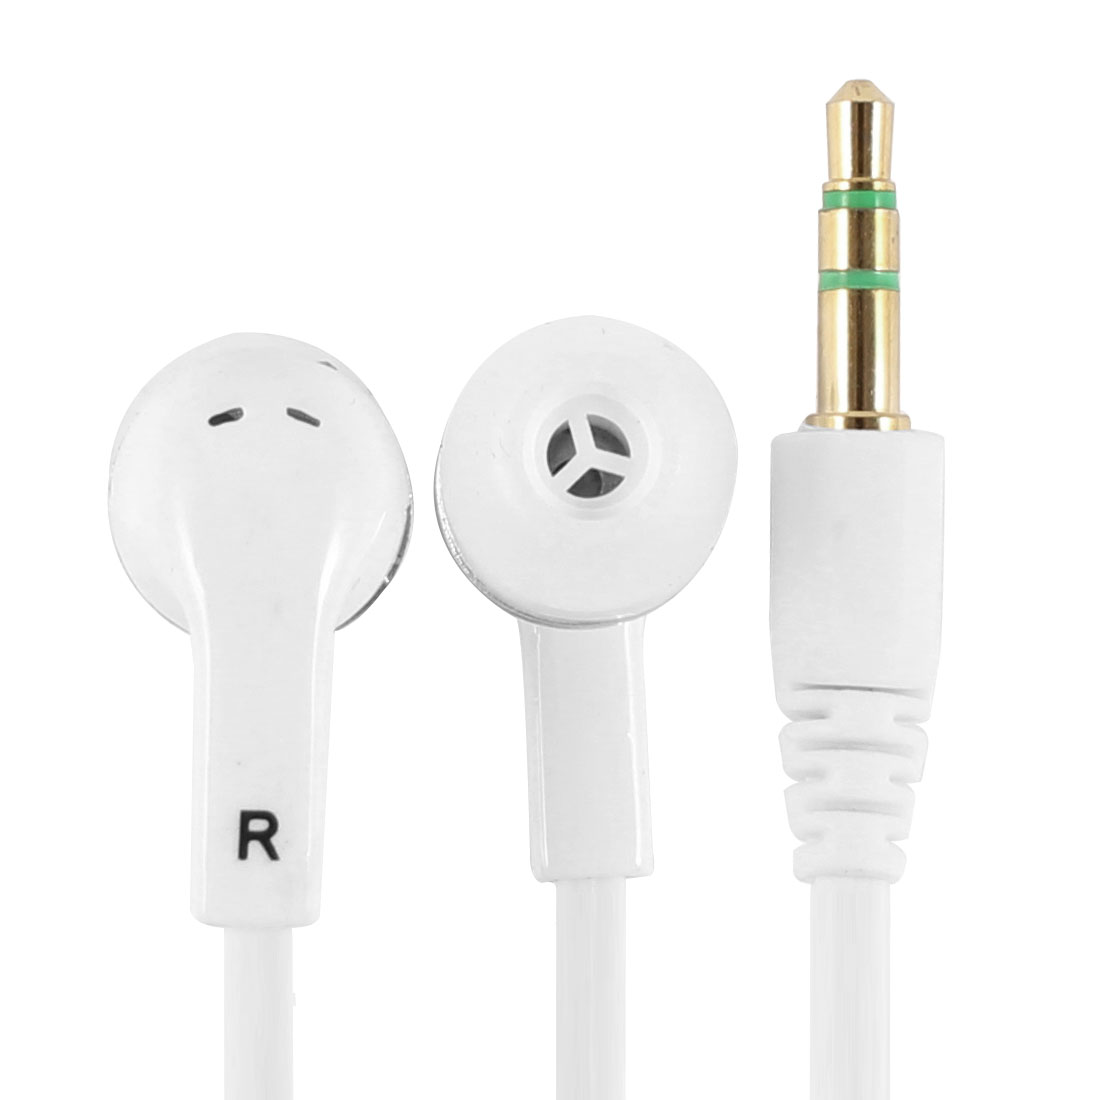 White Universal Flat Type Cable 3.5mm Connector In Ear Earphone Earbud for Phone MP3 MP4